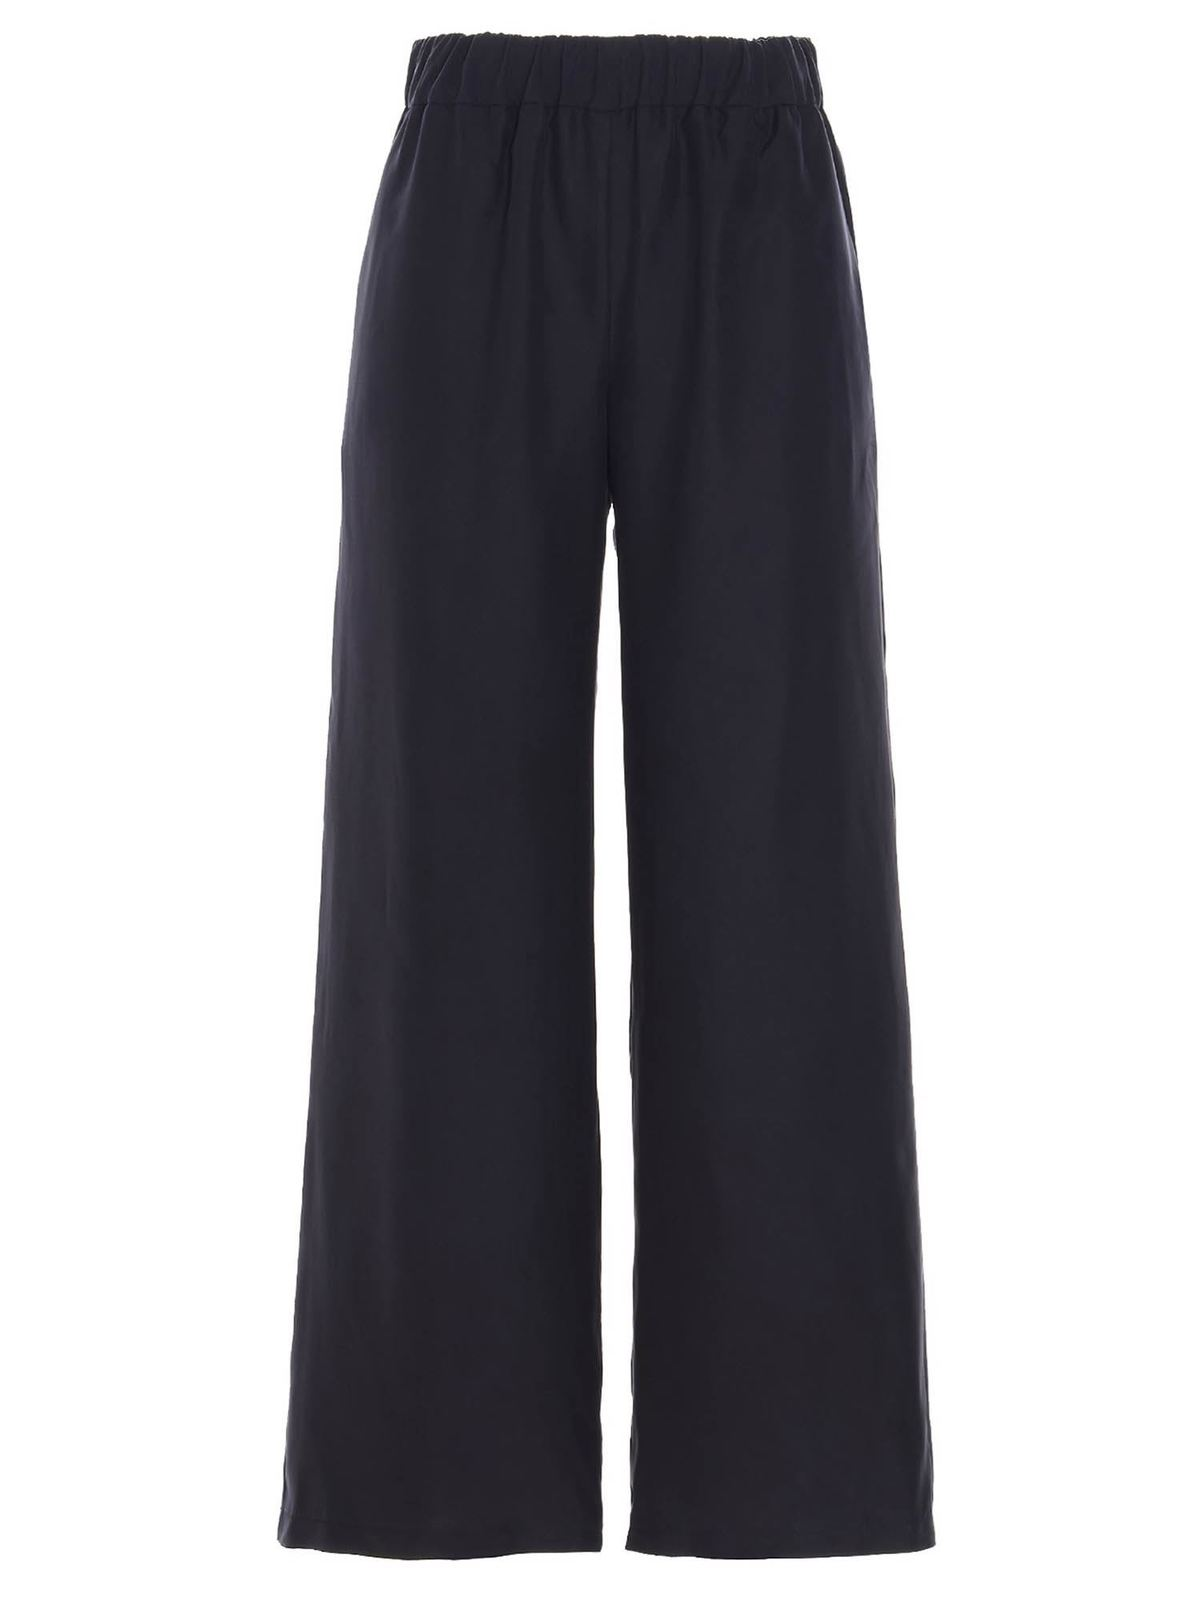 P.a.r.o.s.h. Pants SILK TROUSERS IN BLUE